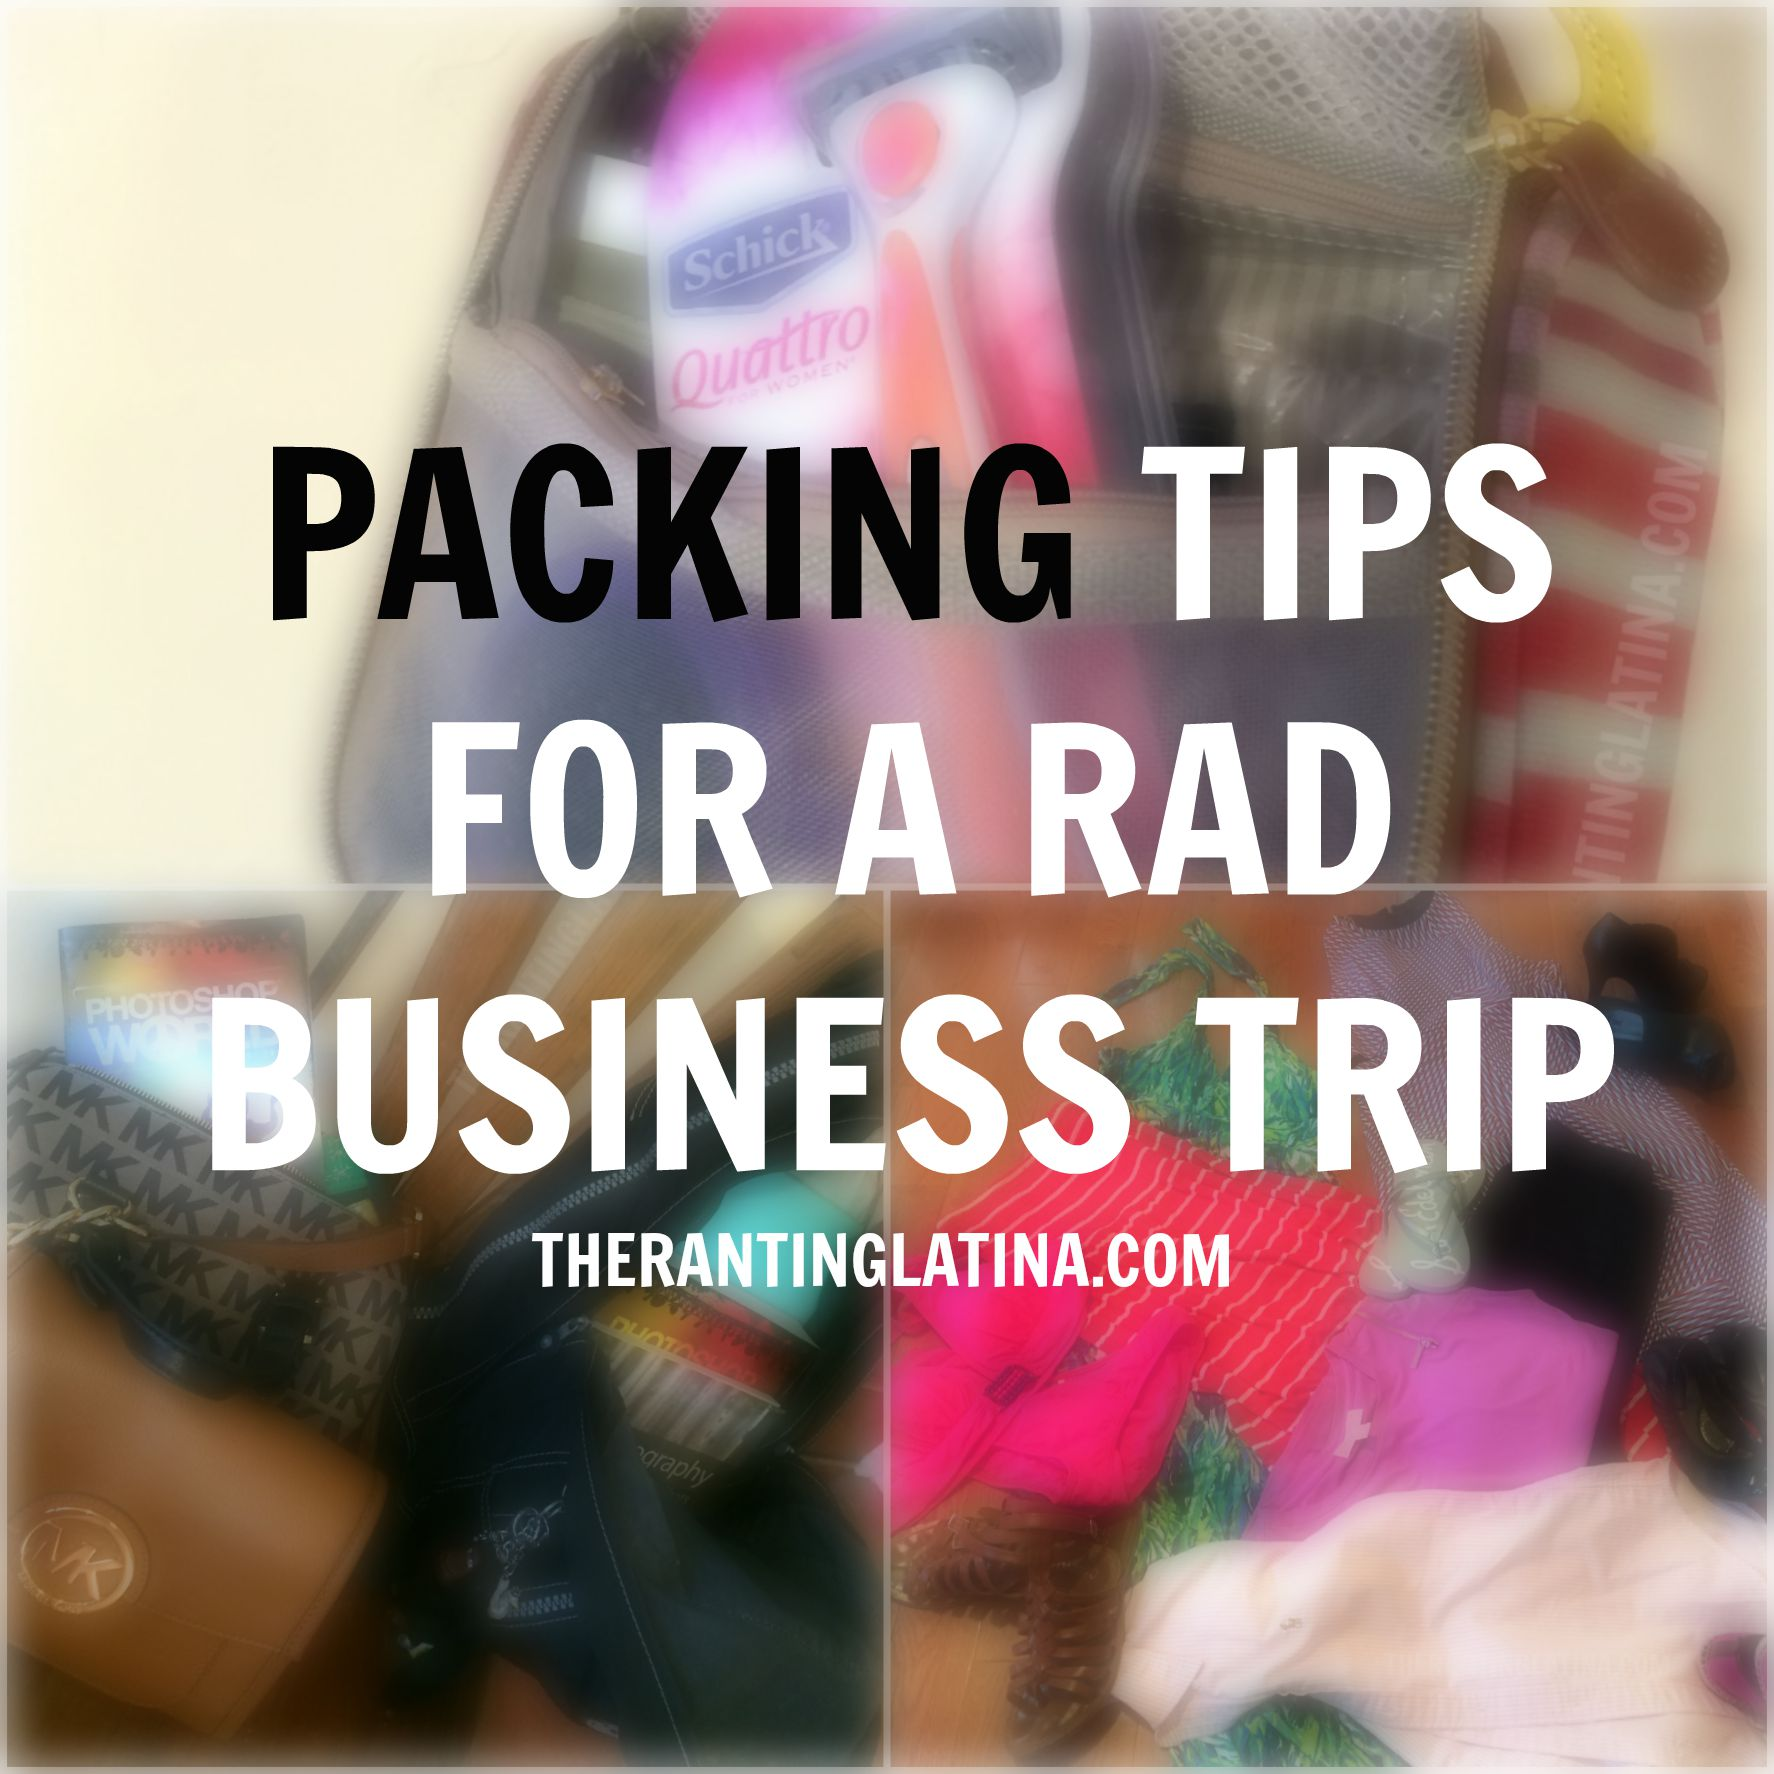 Packing Trips for A Rad Business Trip